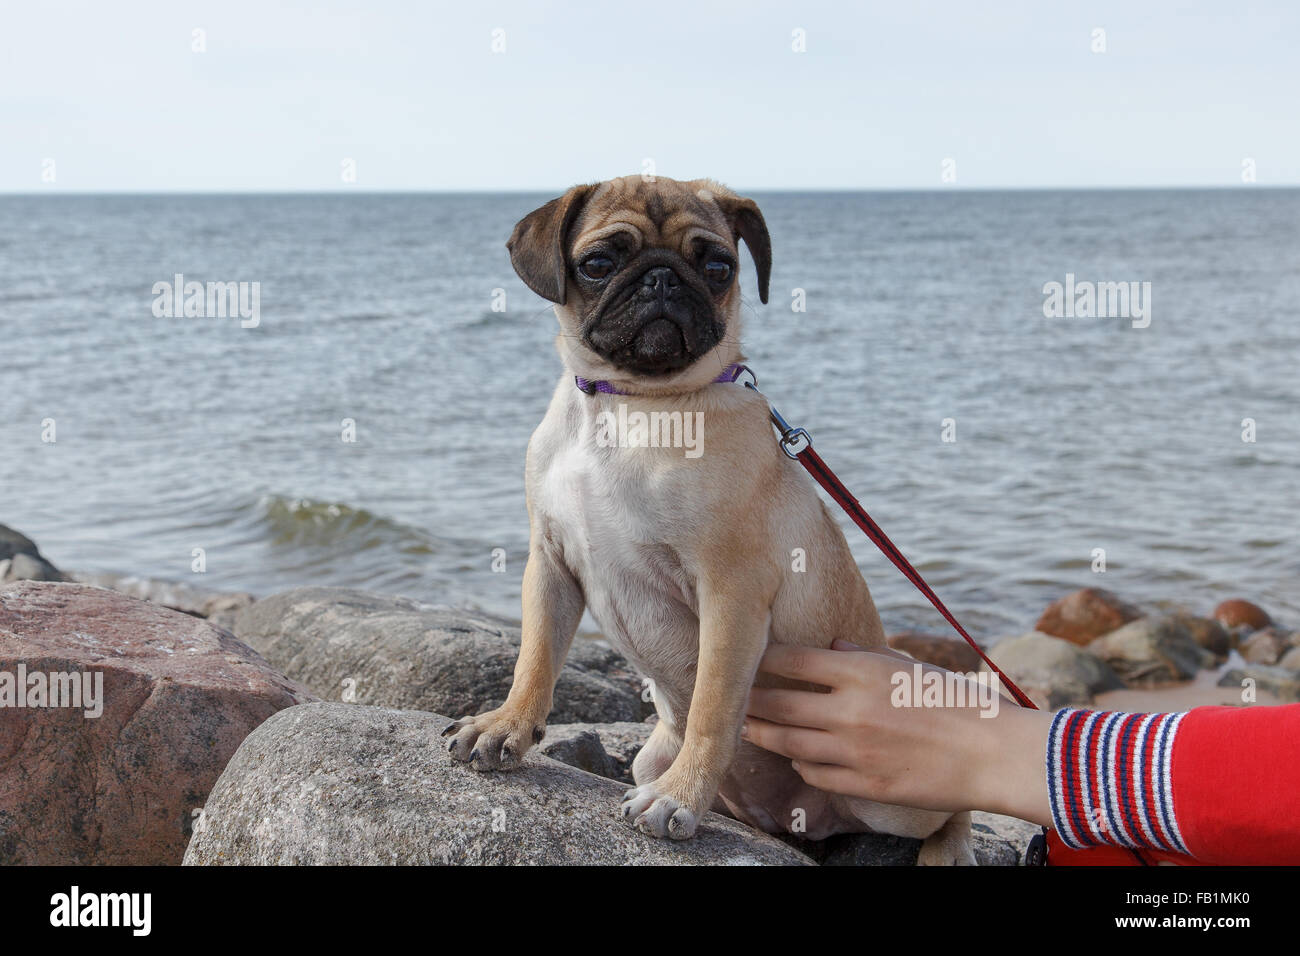 Pug by the sea - Stock Image